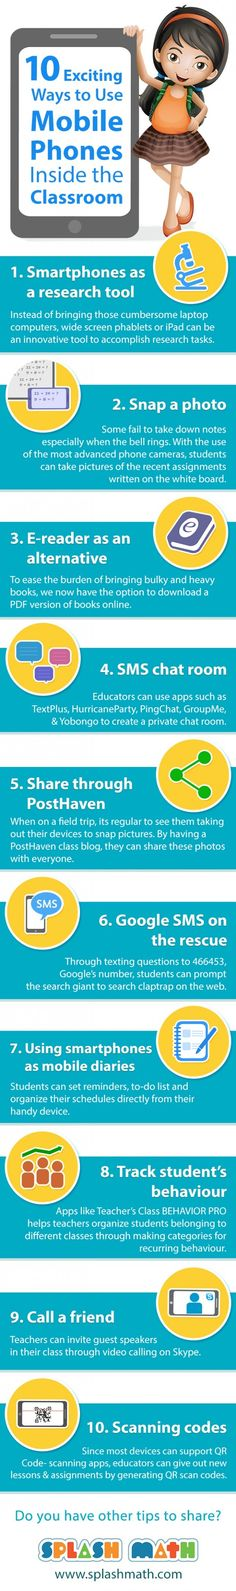 10 Exciting Ways to Use Mobile Phones In the Classroom Infographic | e-Learning Infographics